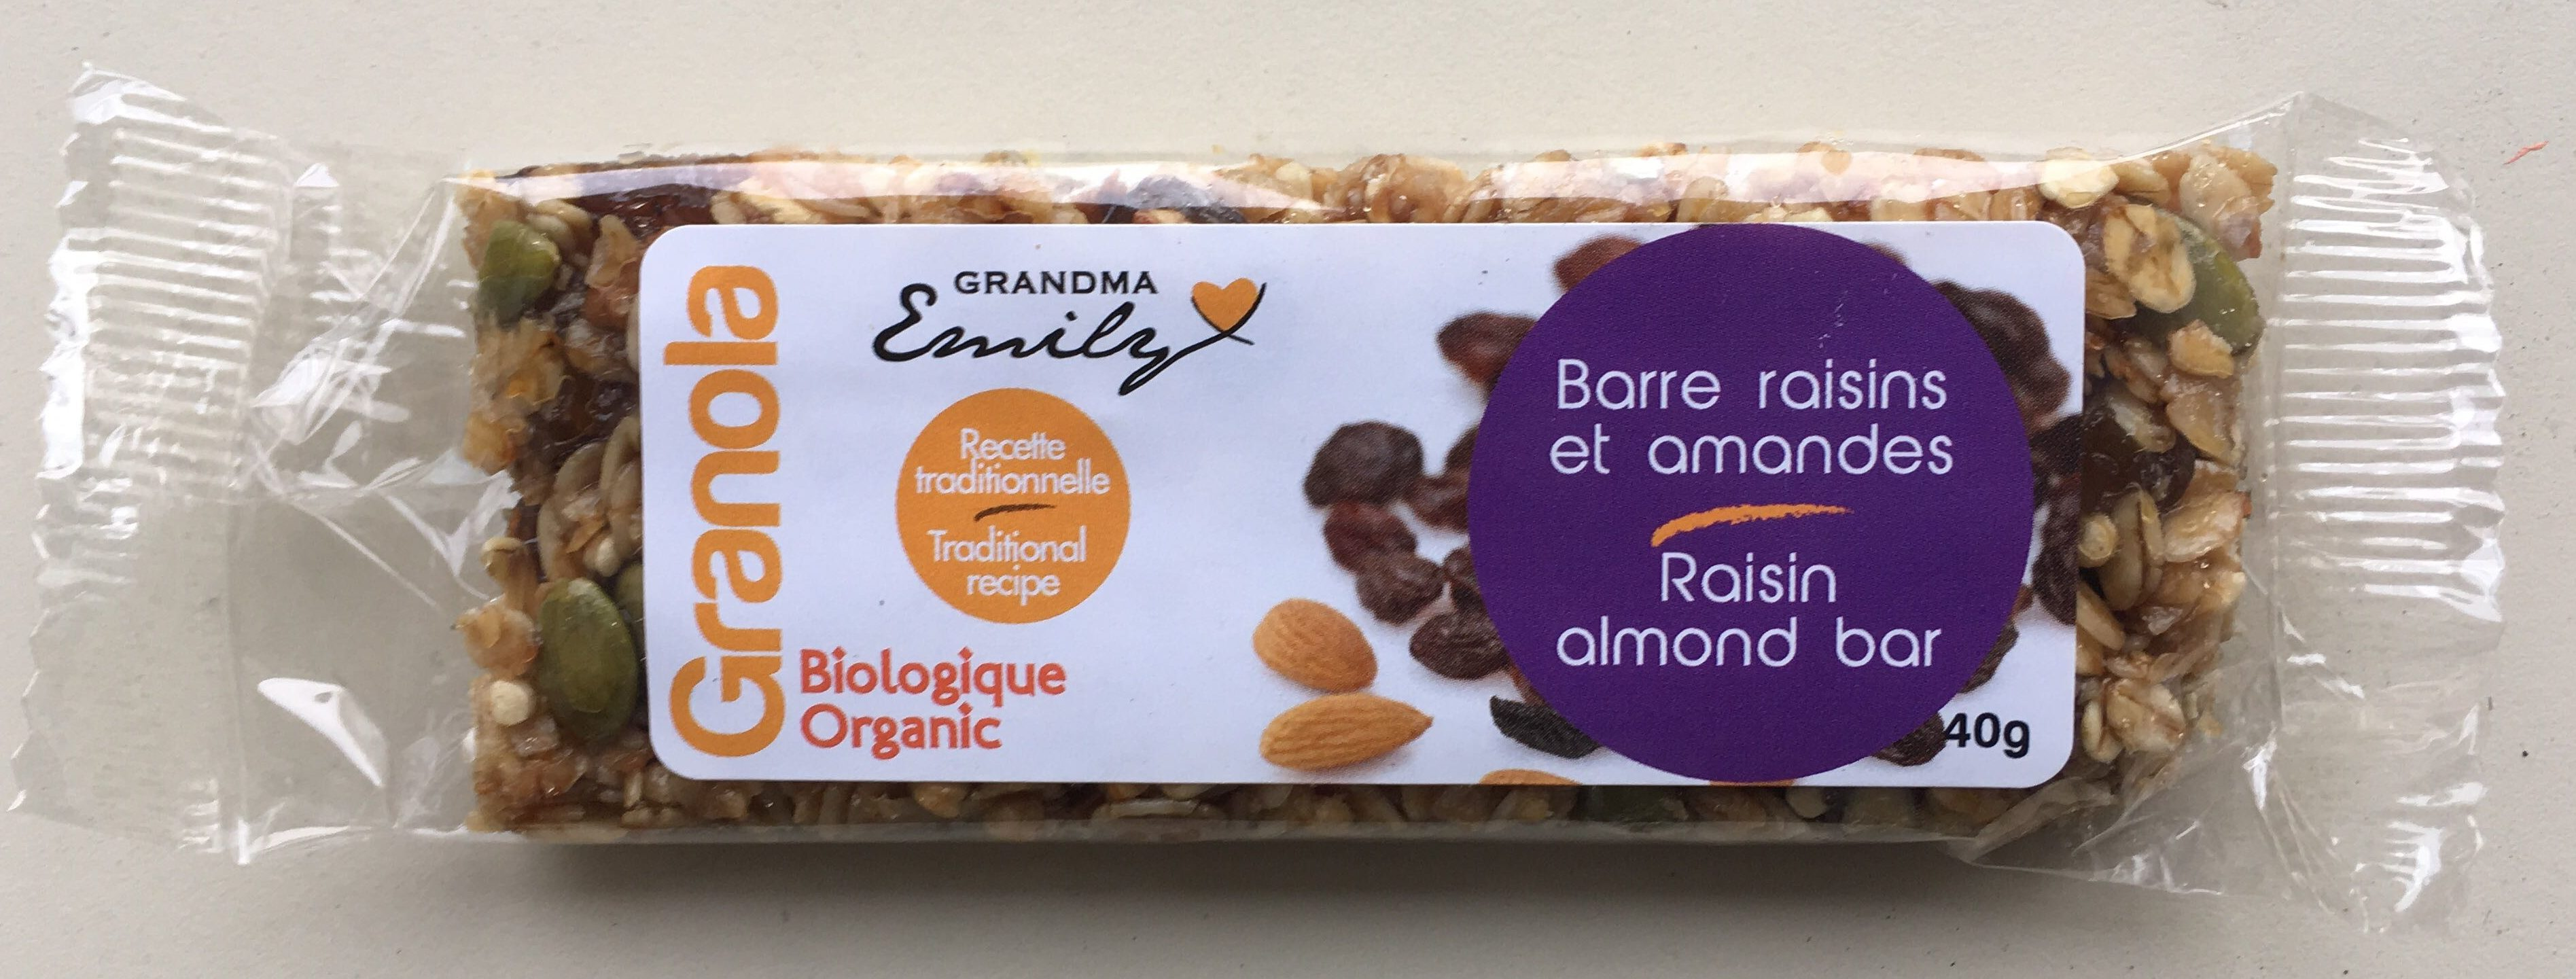 Raisin almond bar - Product - en